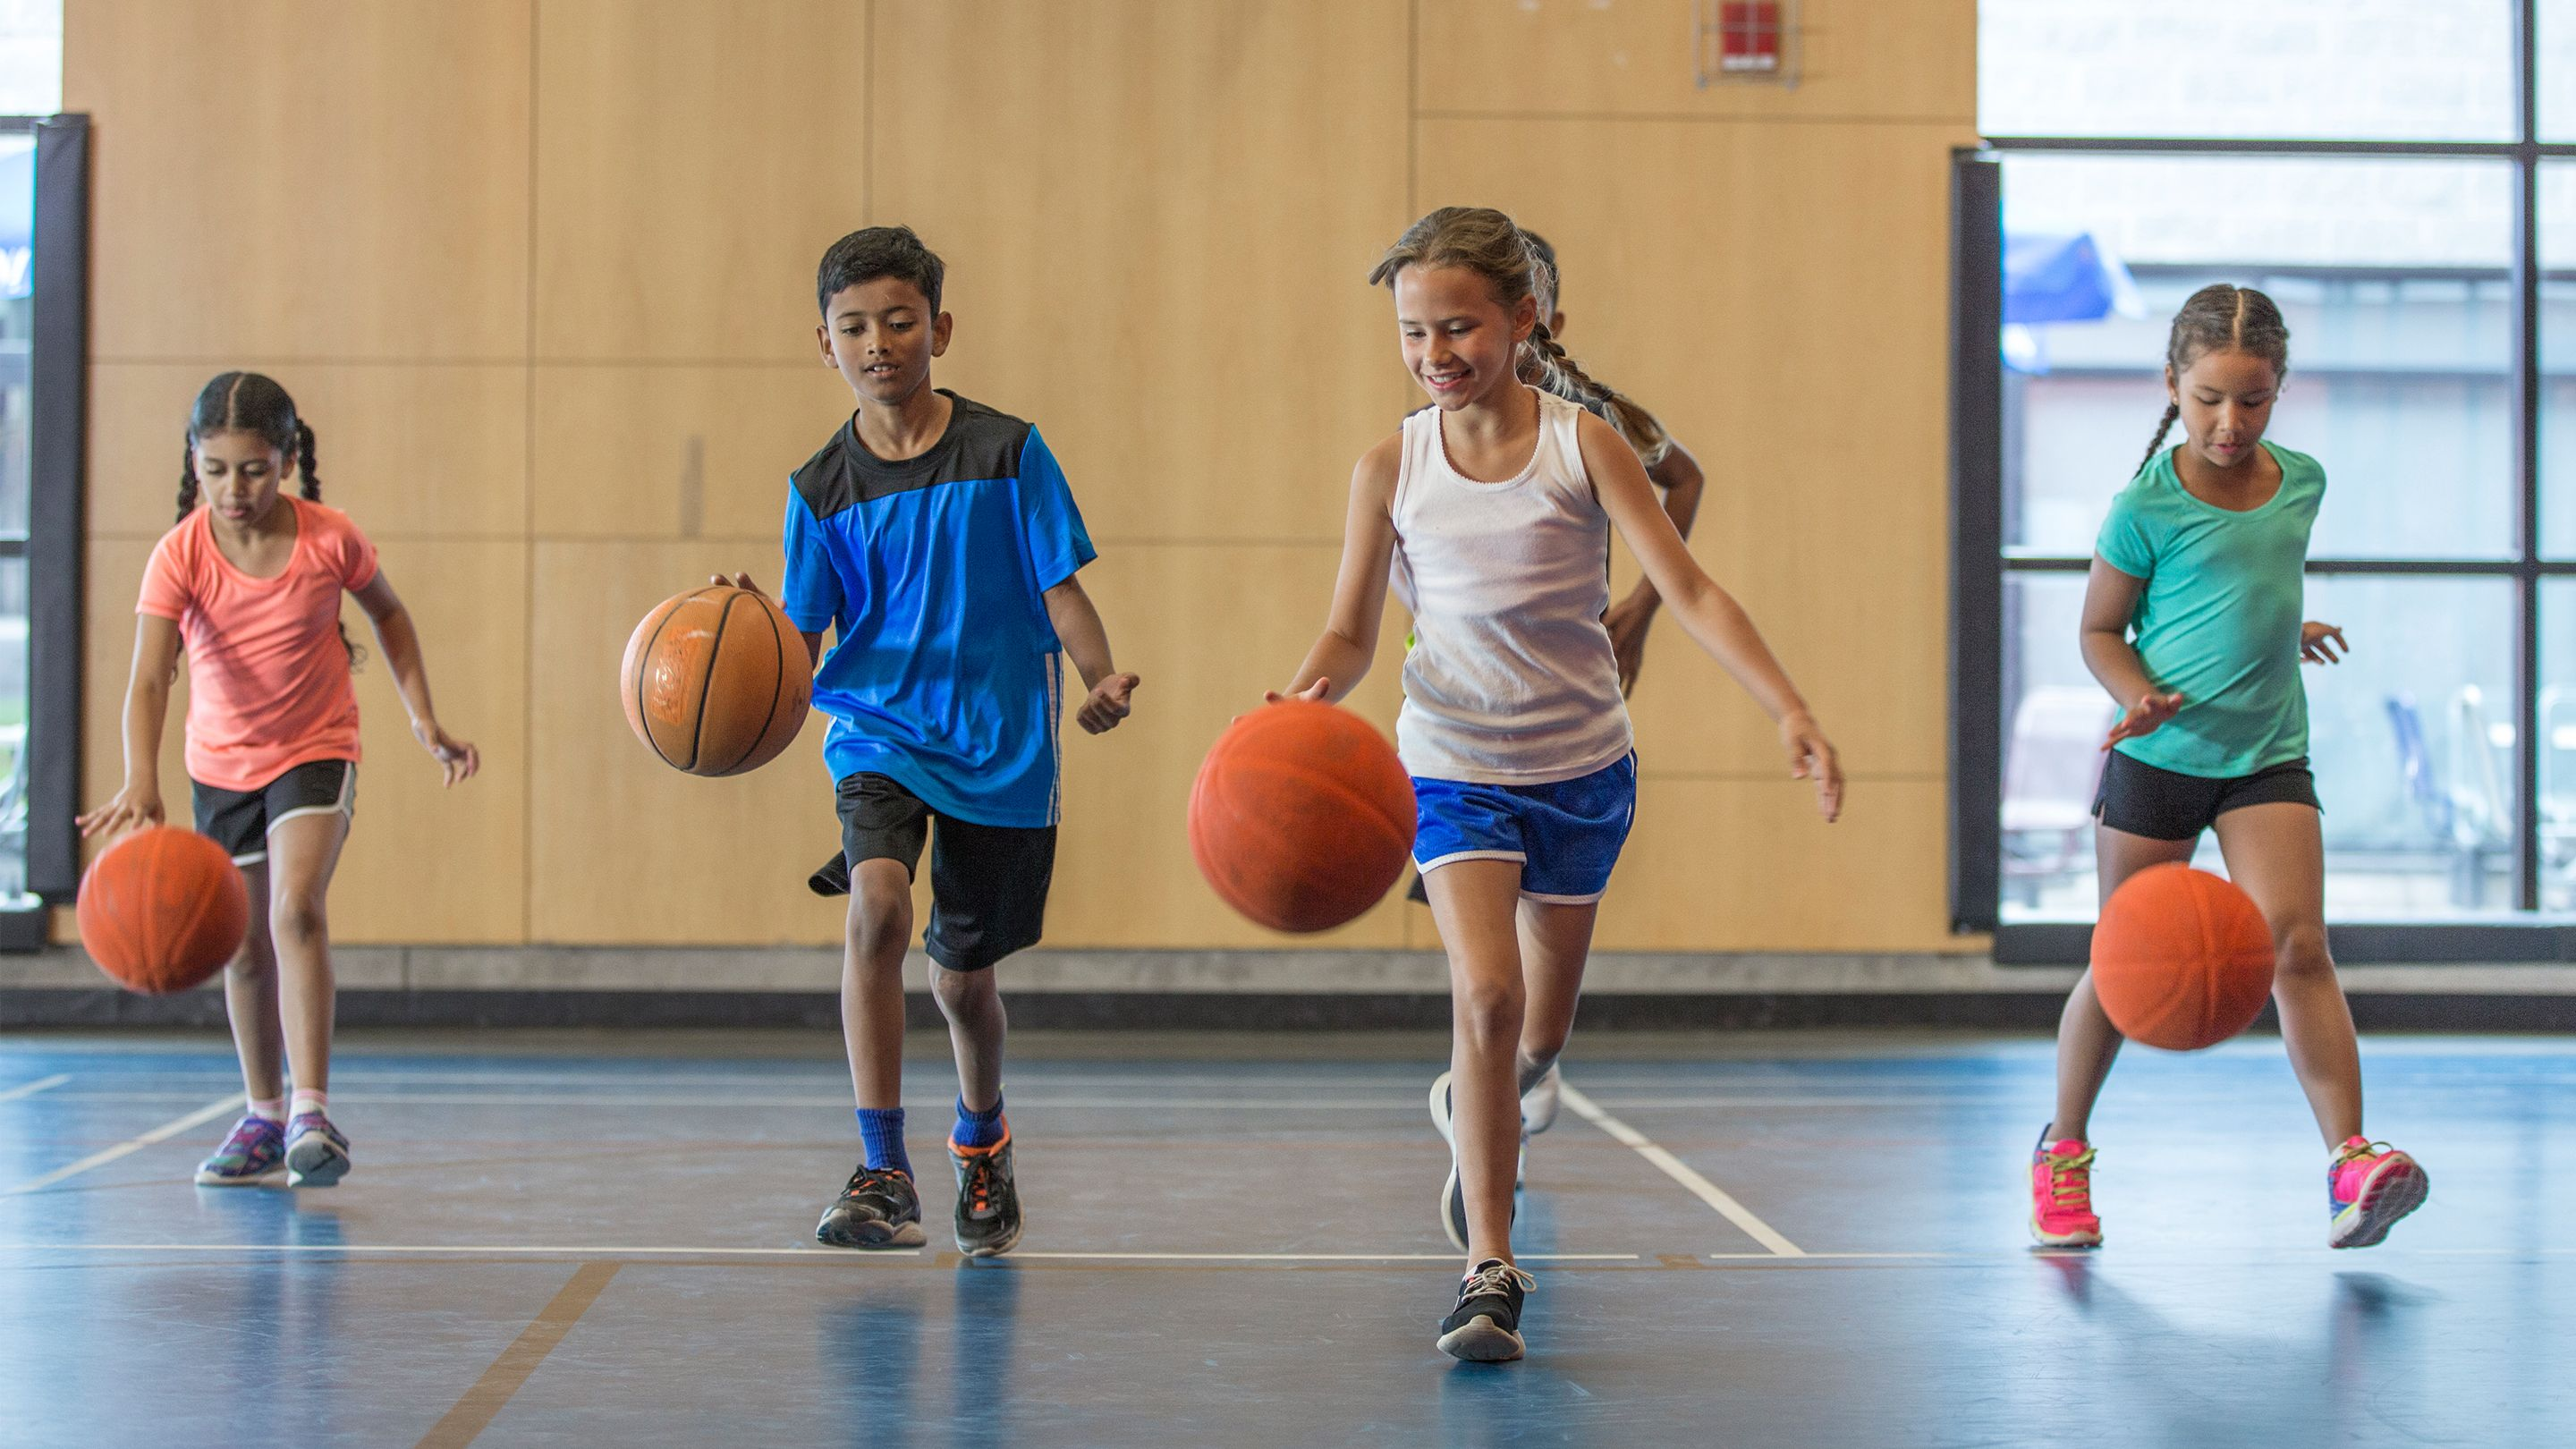 Basketball Mathematics—and 4 Other Ways to Mix Movement and Learning